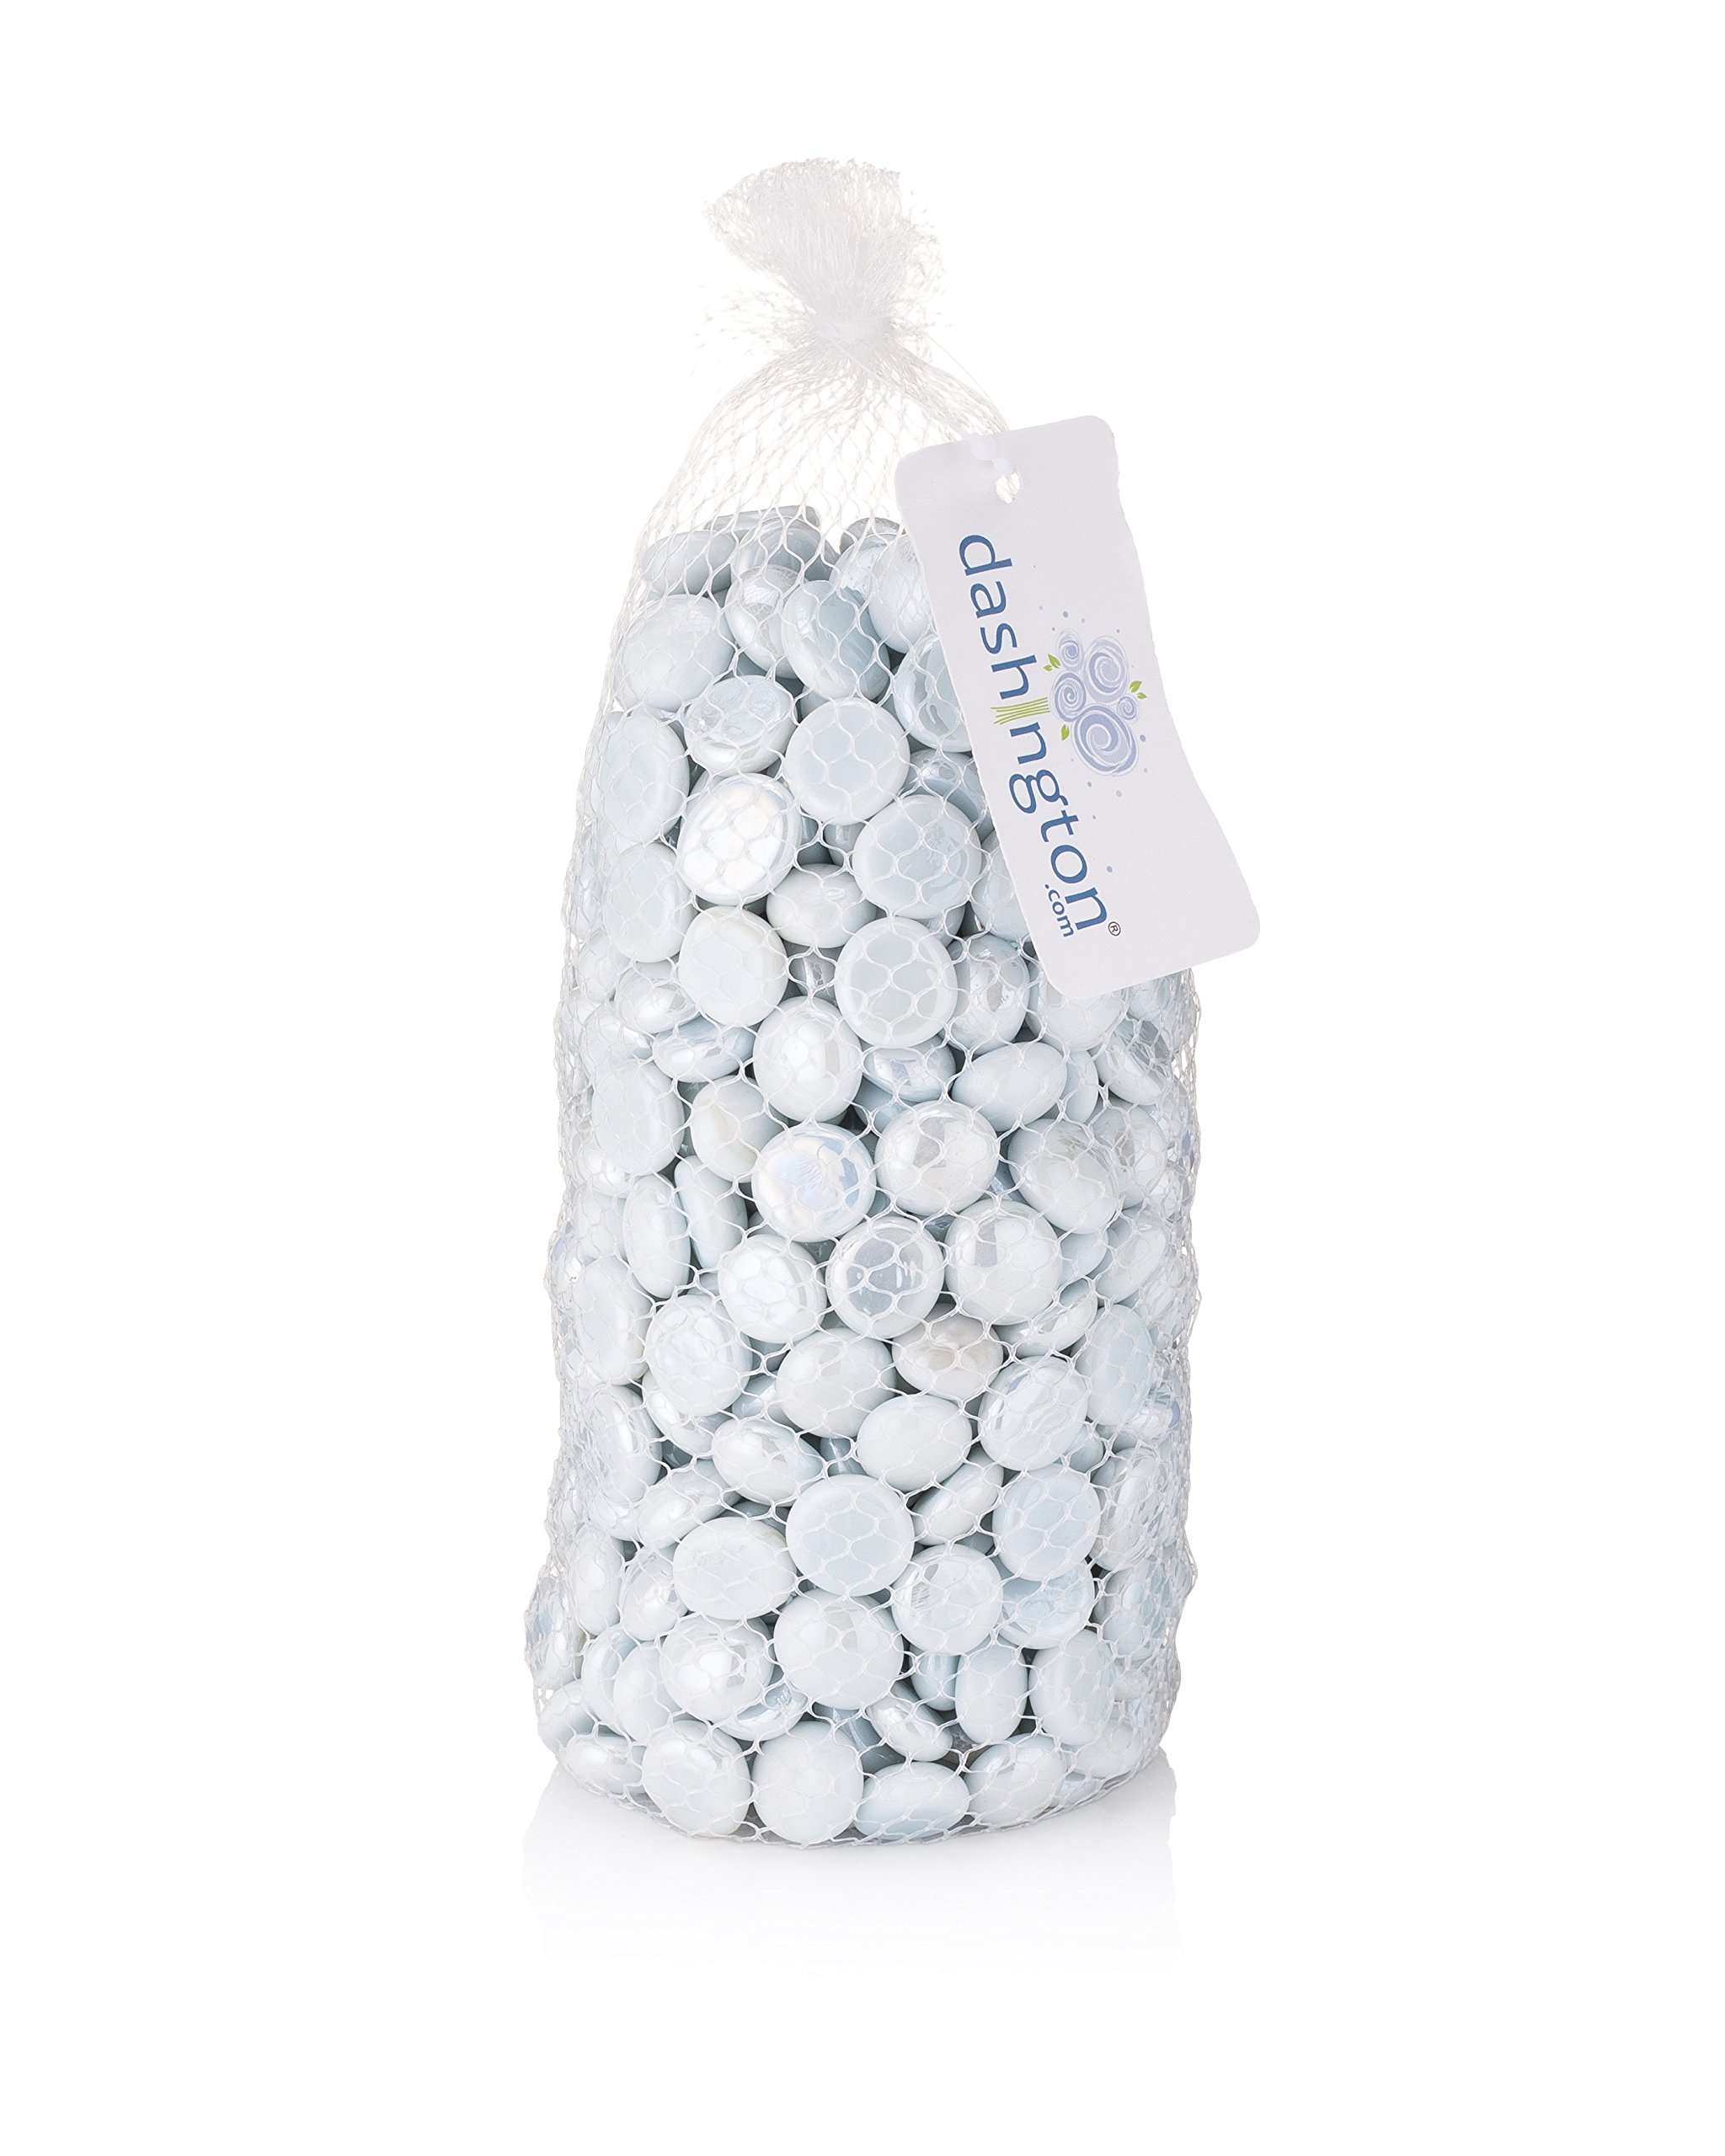 Dashington Flat Solid White Marbles (5 Pound Bag/80oz), Pebbles for Vase Filler, Table Scatter, Aquarium Decor, Gems